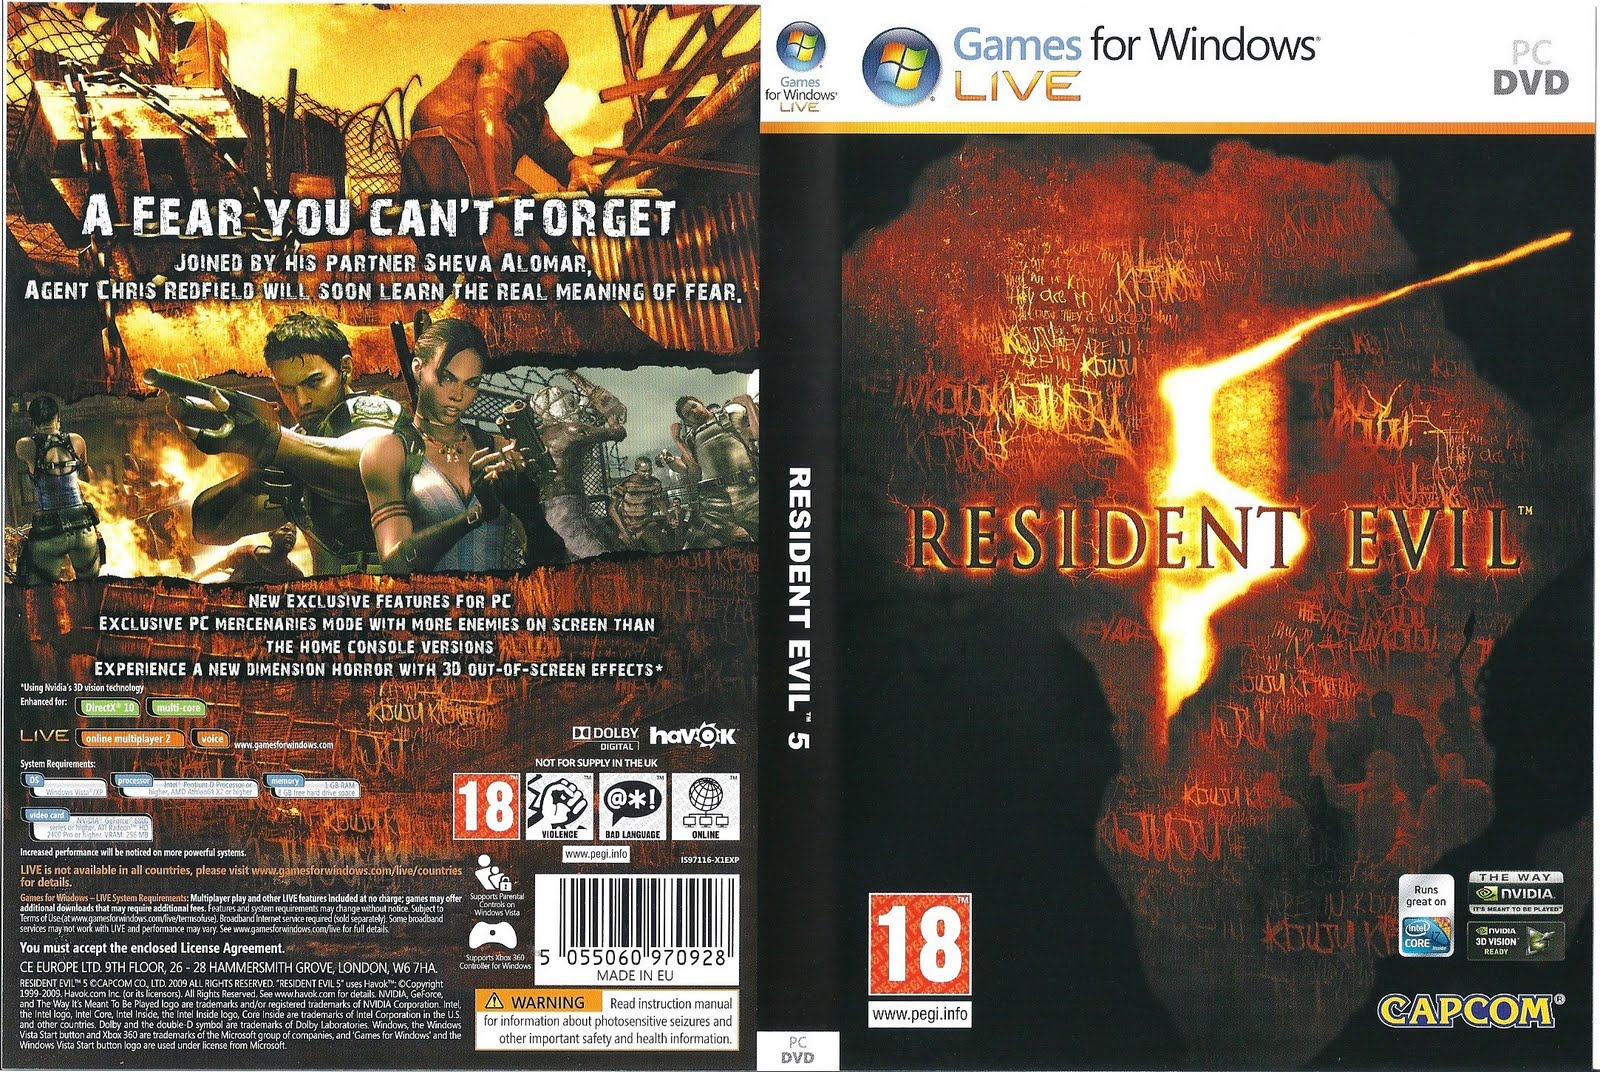 RESIDENT EVIL 5 GUIDE PDF DOWNLOAD